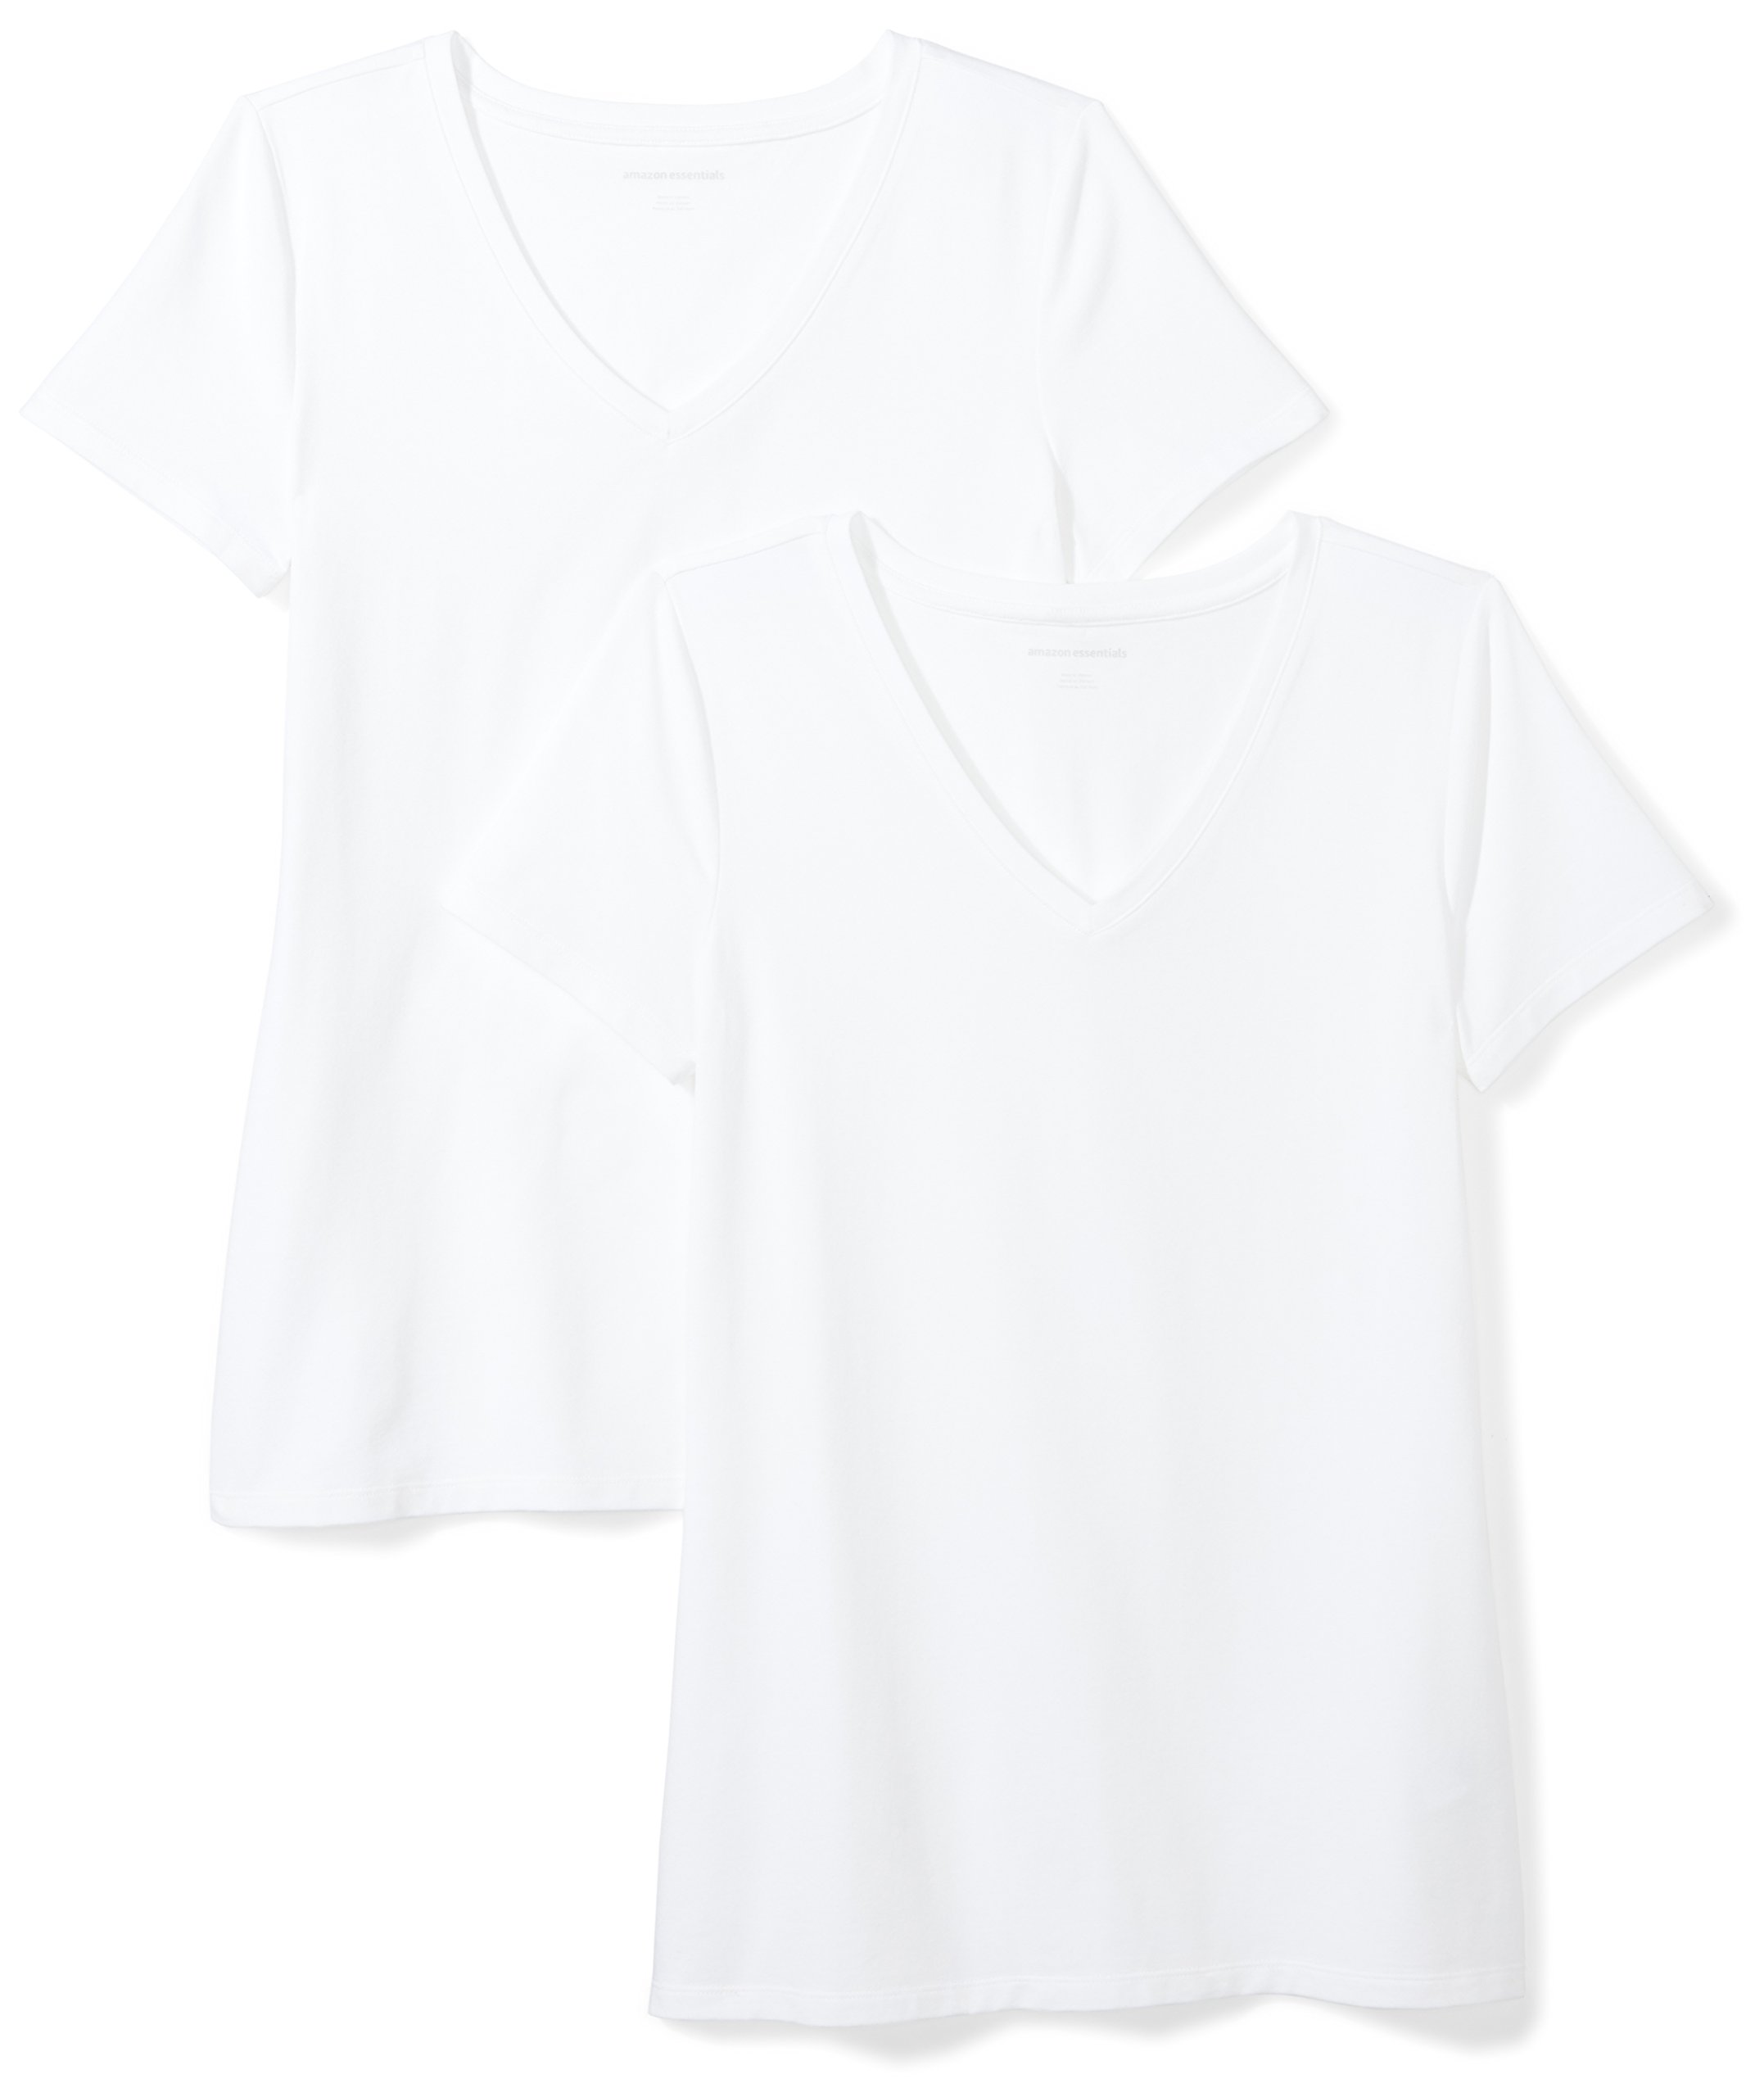 Amazon Essentials Women's 2-Pack Short-Sleeve V-Neck Solid T-Shirt, White, Medium